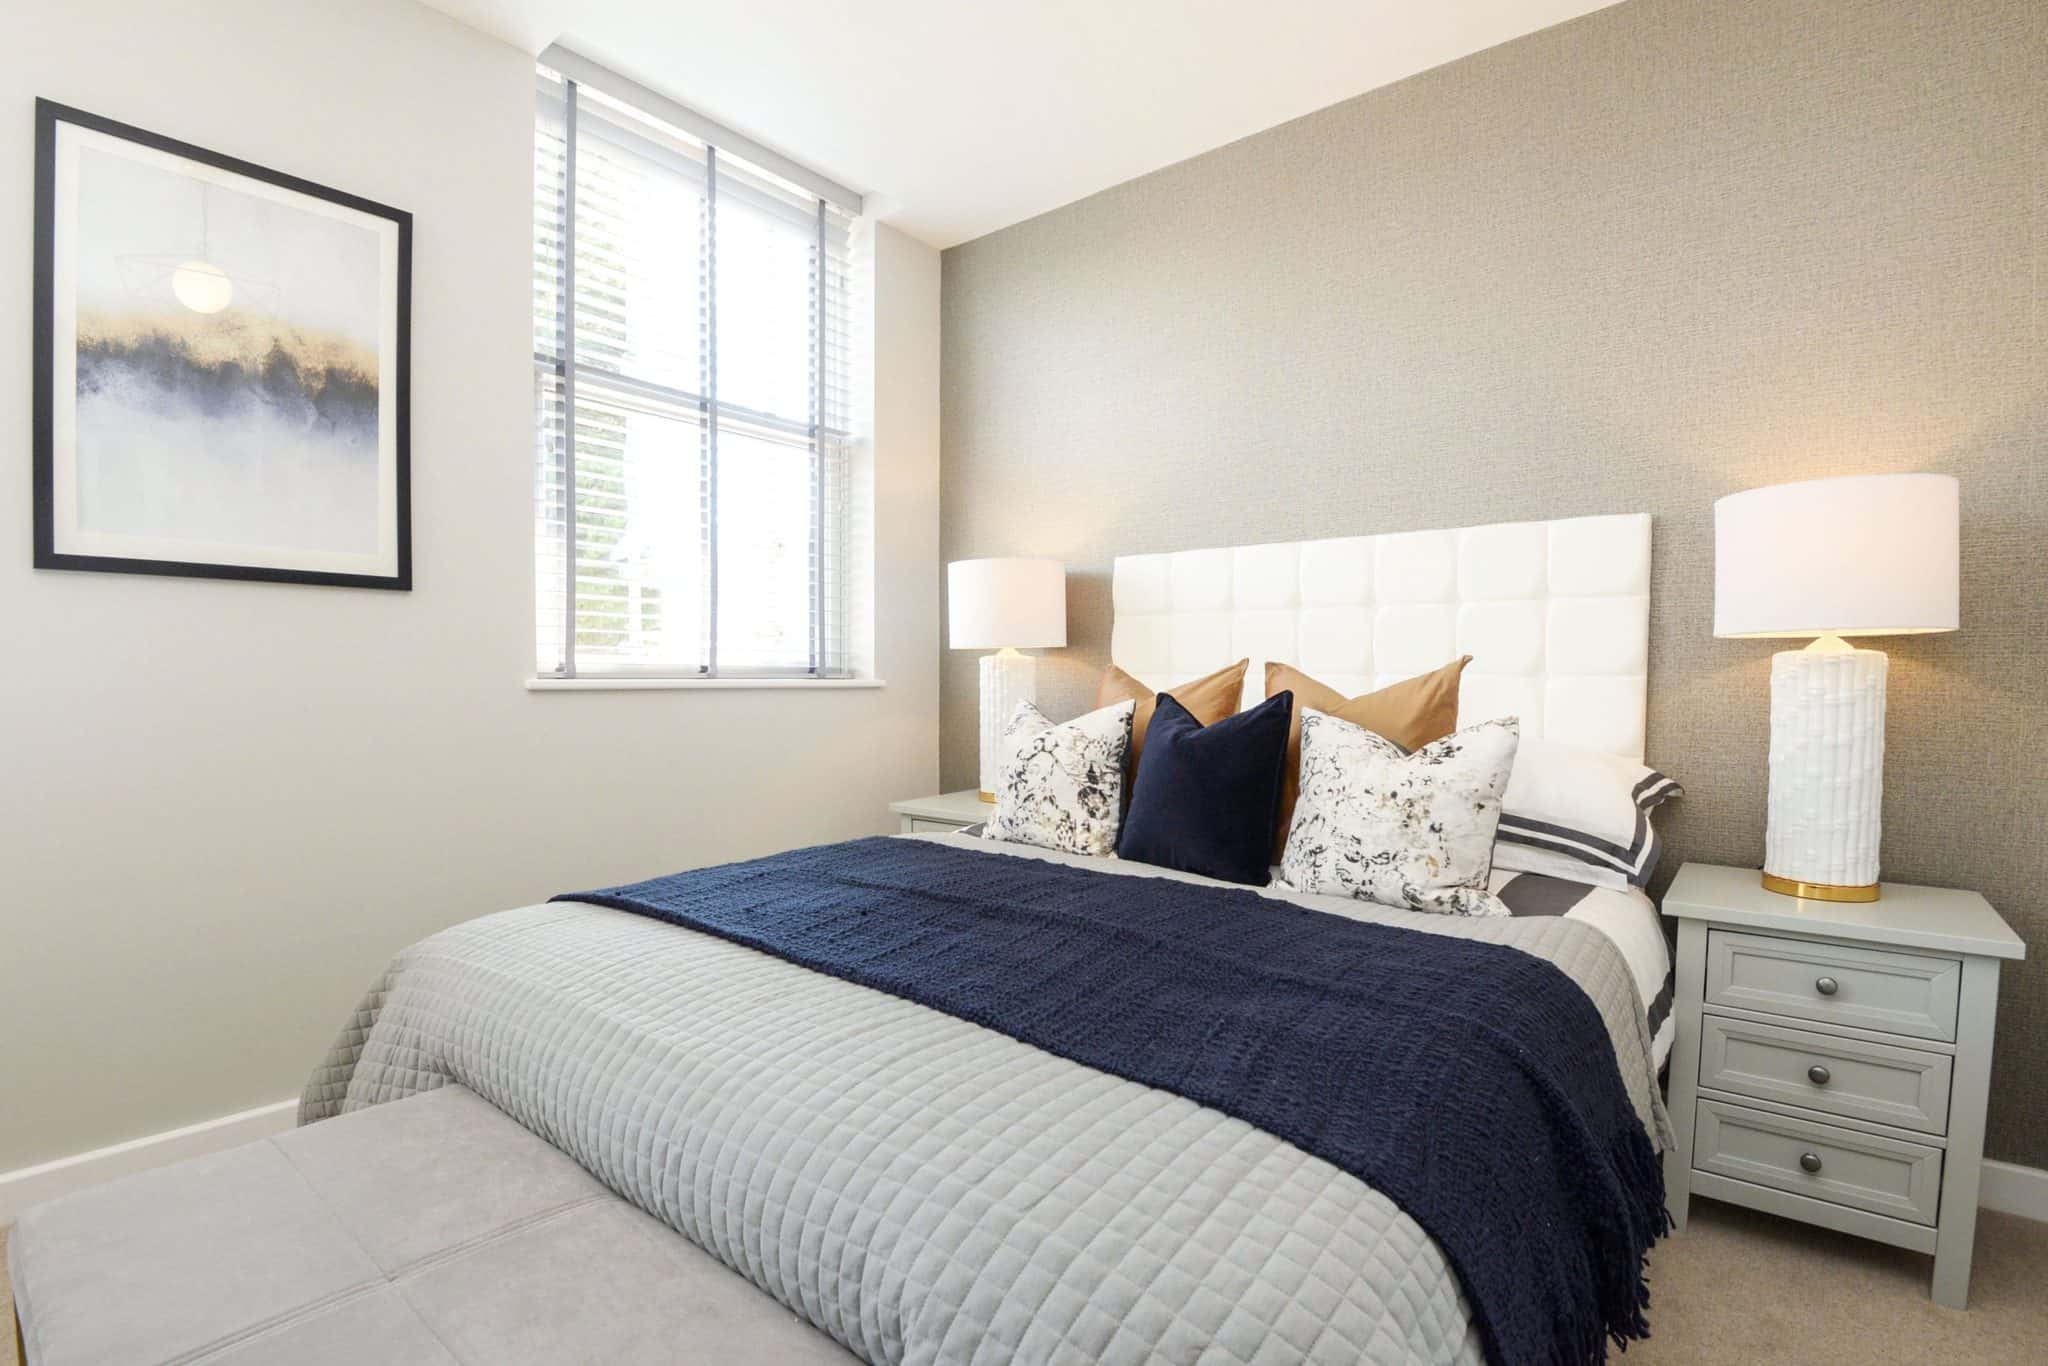 Bedroom Interior Commercial to Residential Property Conversion Apartment